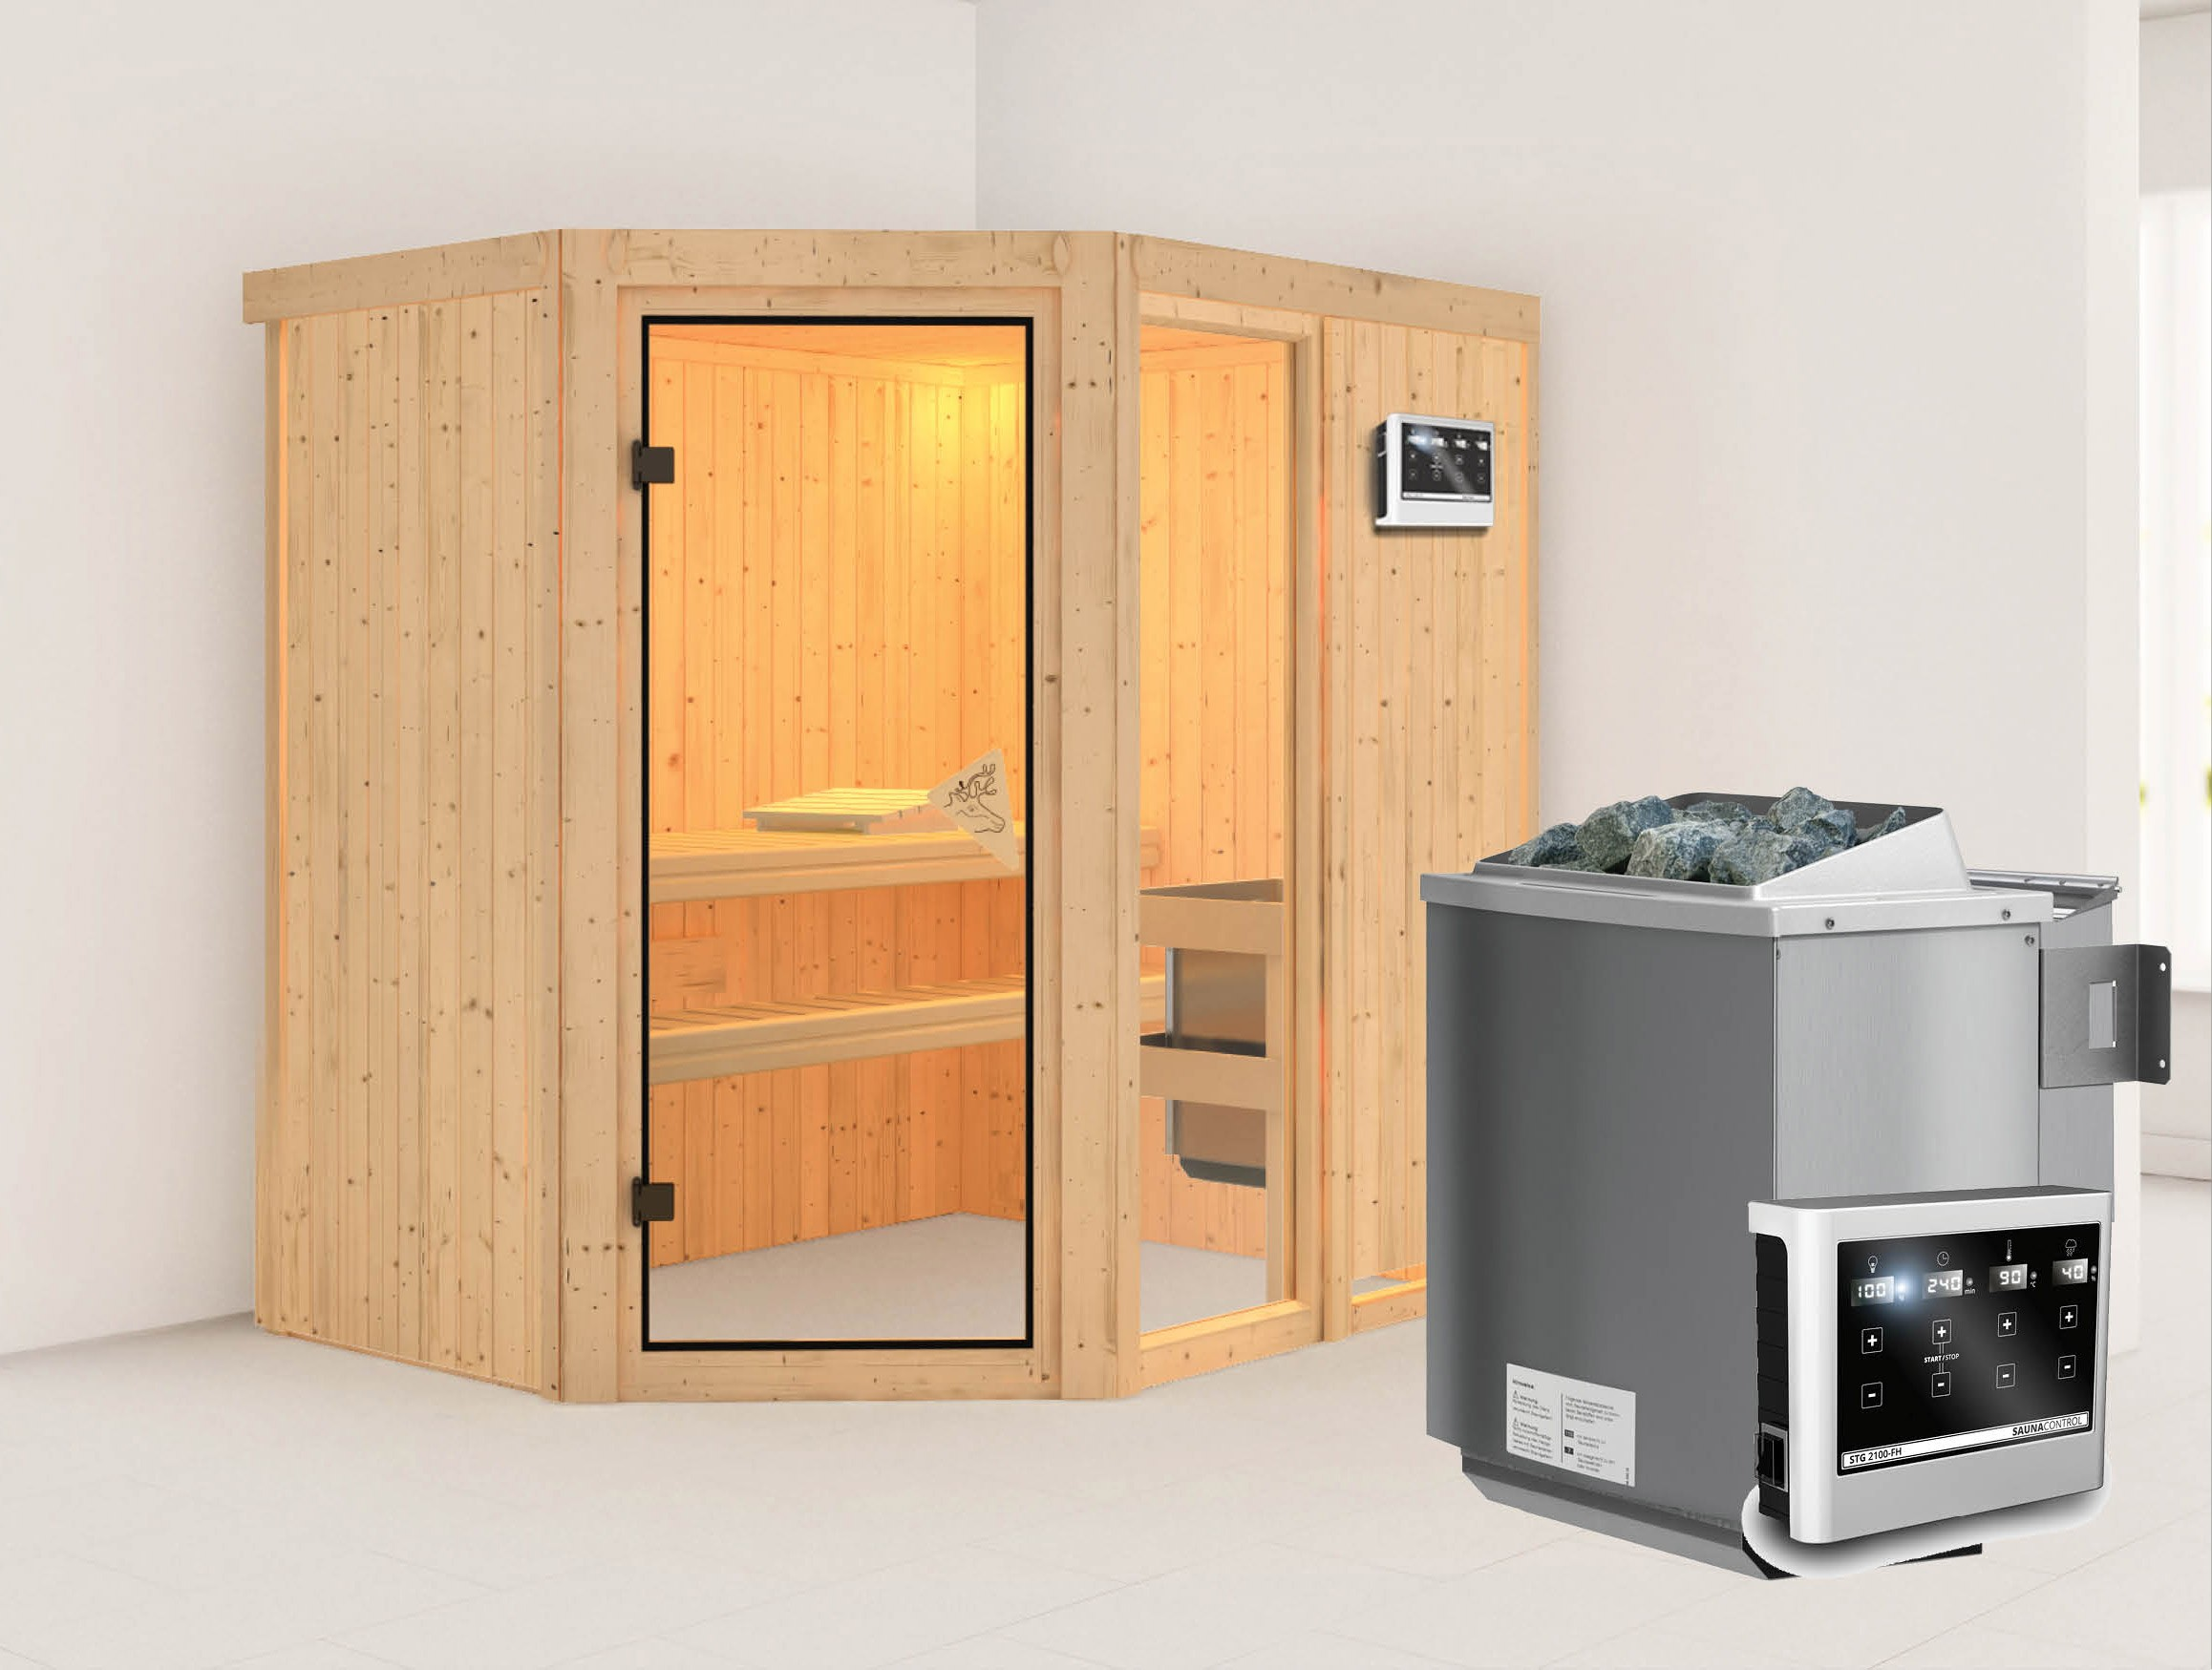 karibu sauna fiona1 68mm mit bio ofen 9kw extern classic t r bei. Black Bedroom Furniture Sets. Home Design Ideas